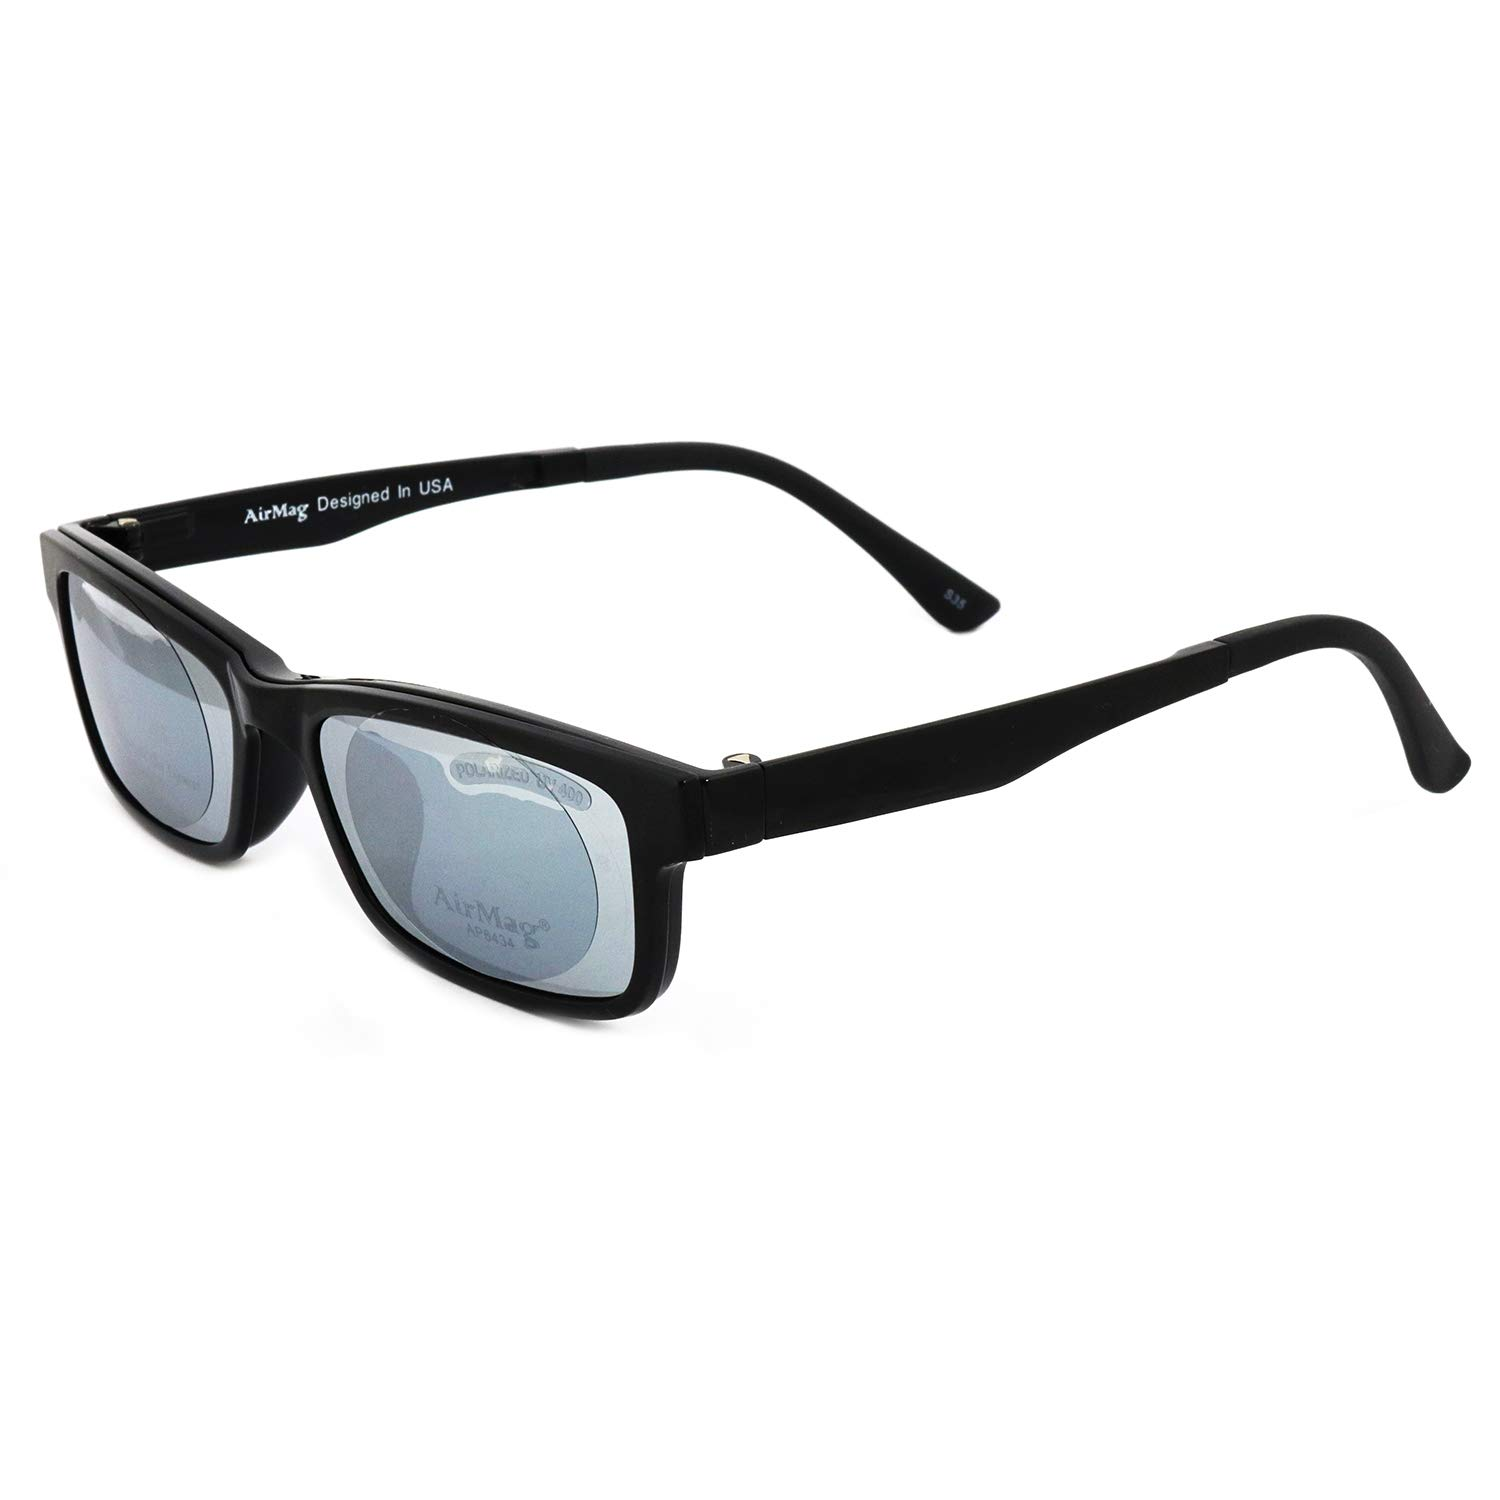 2856f09297 Amazon.com  AirMag AP6434 Eyeglasses - Frames with Mirror Magnetic Clip-On Polarized  Sunglasses - Black 52-16-141  Clothing